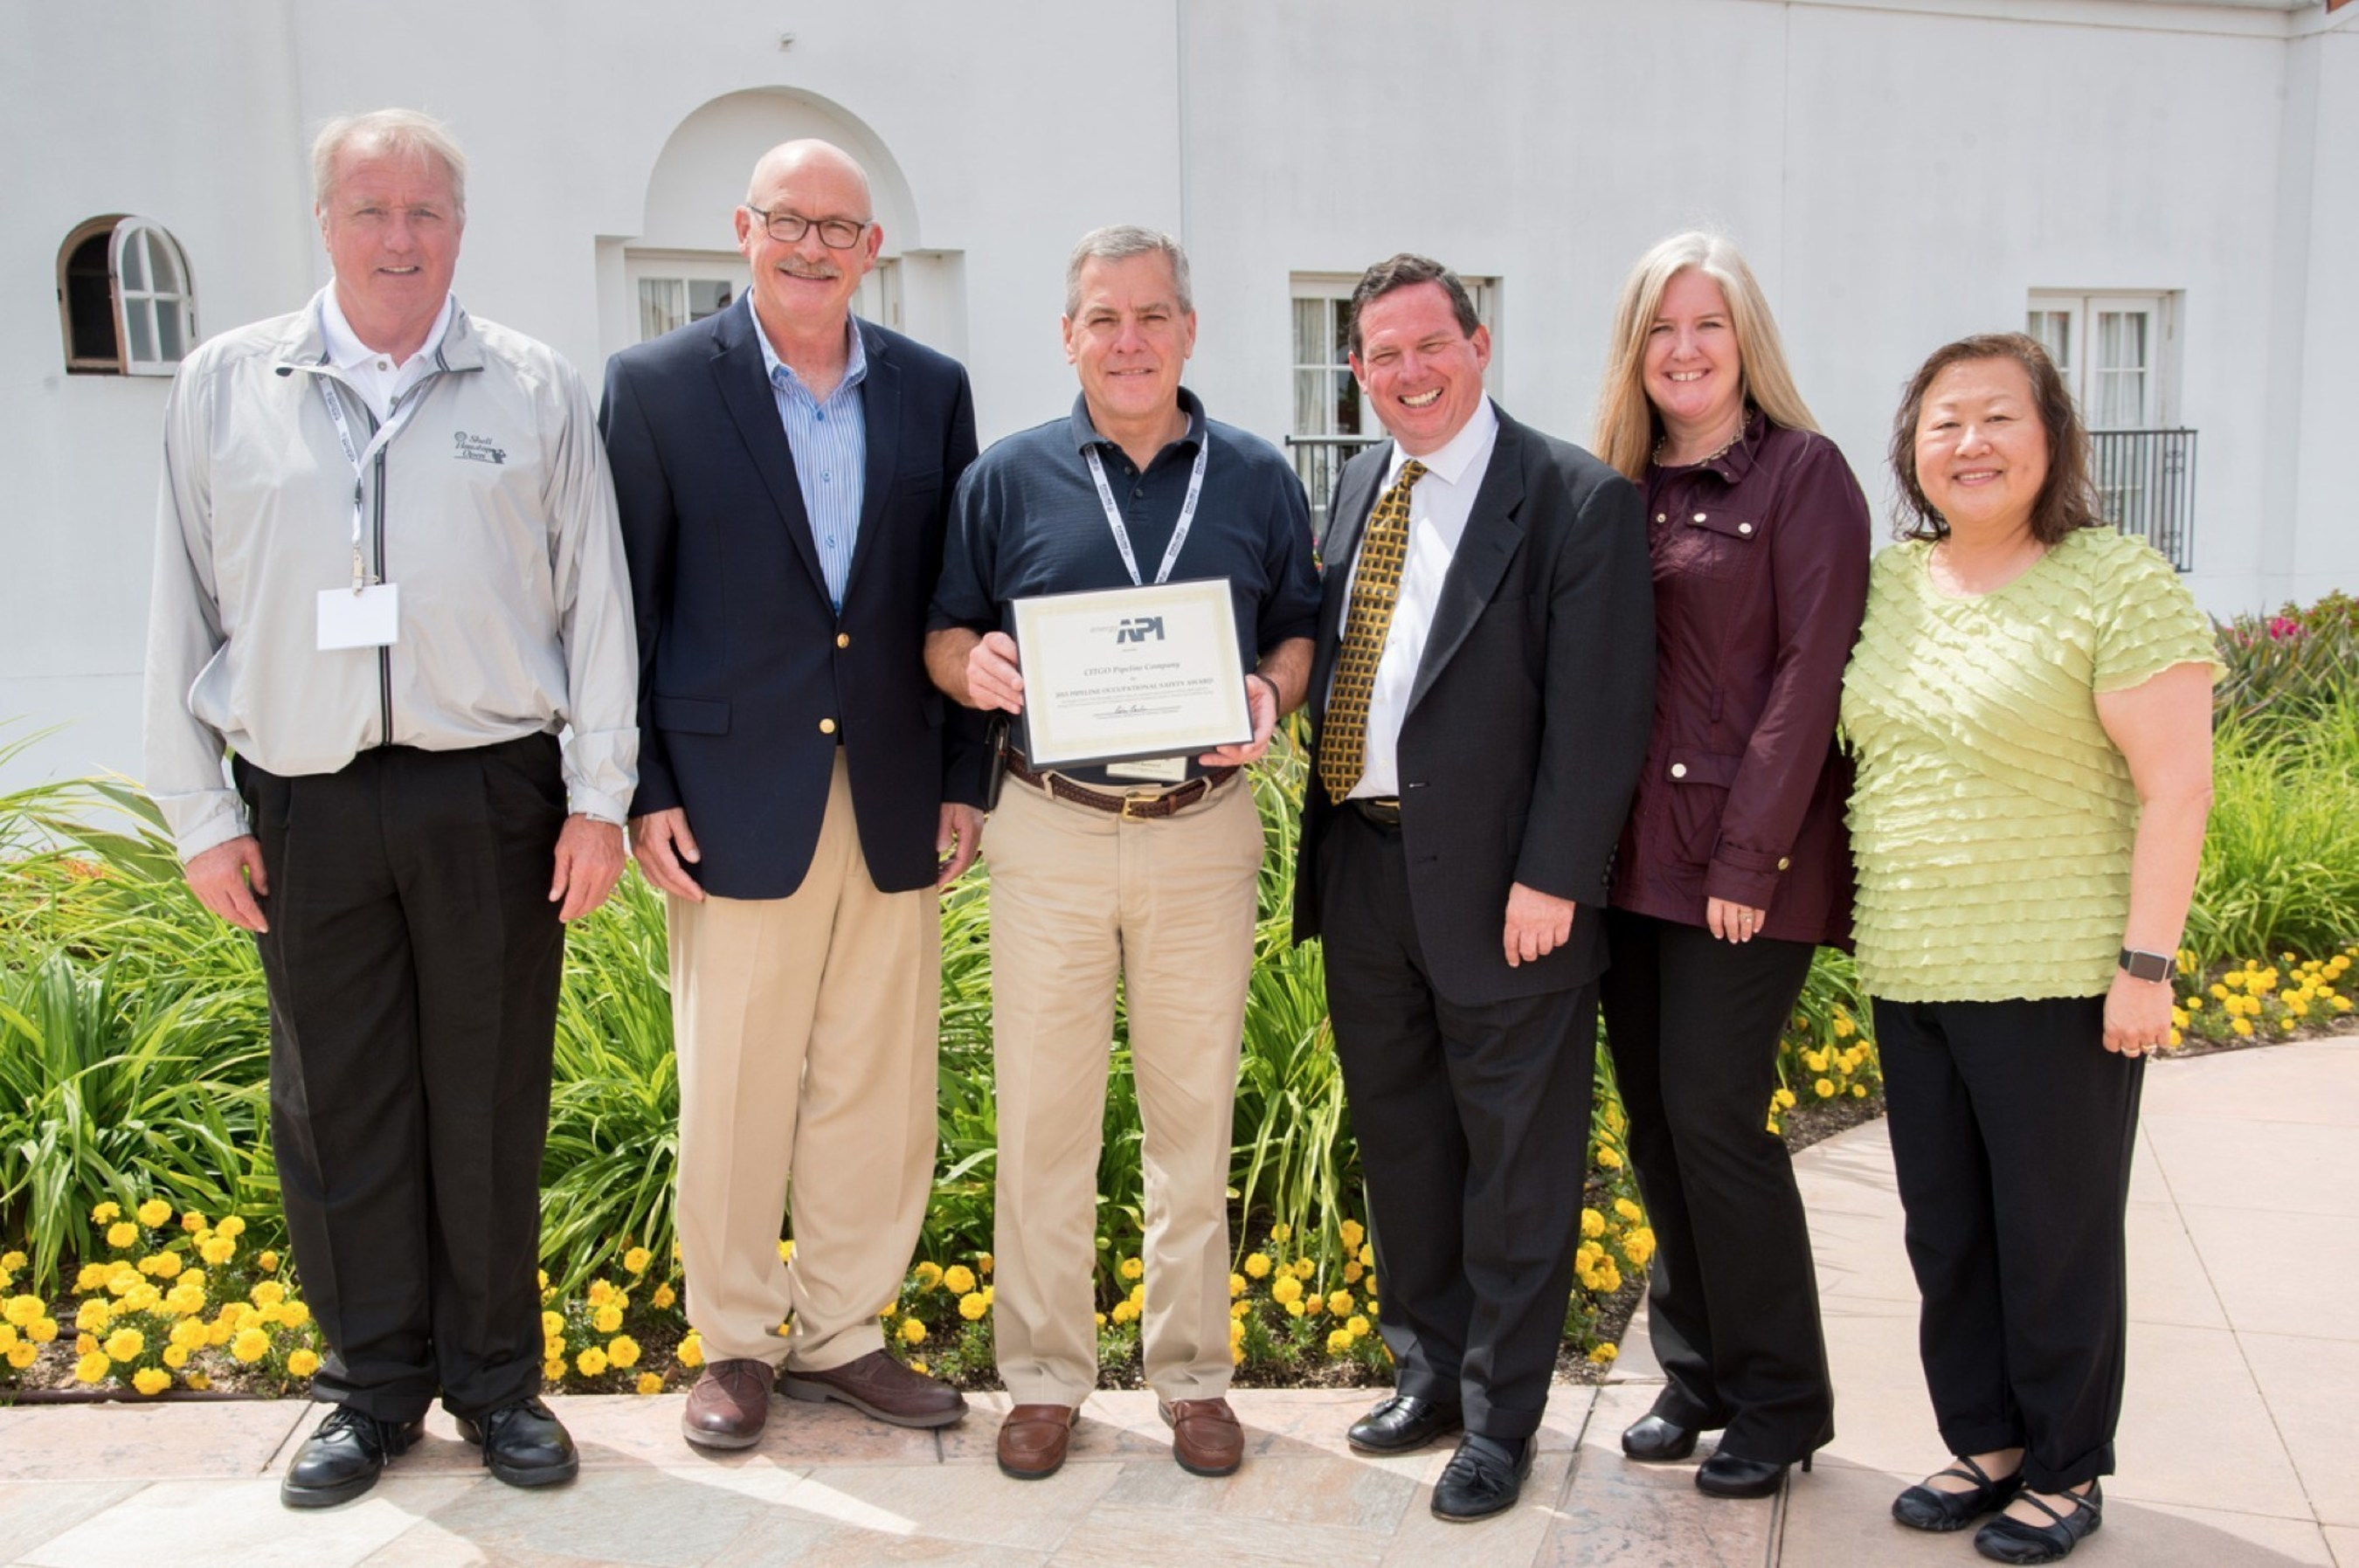 CITGO Recognized with API Pipeline Occupational Safety Award for 7th Year in a Row